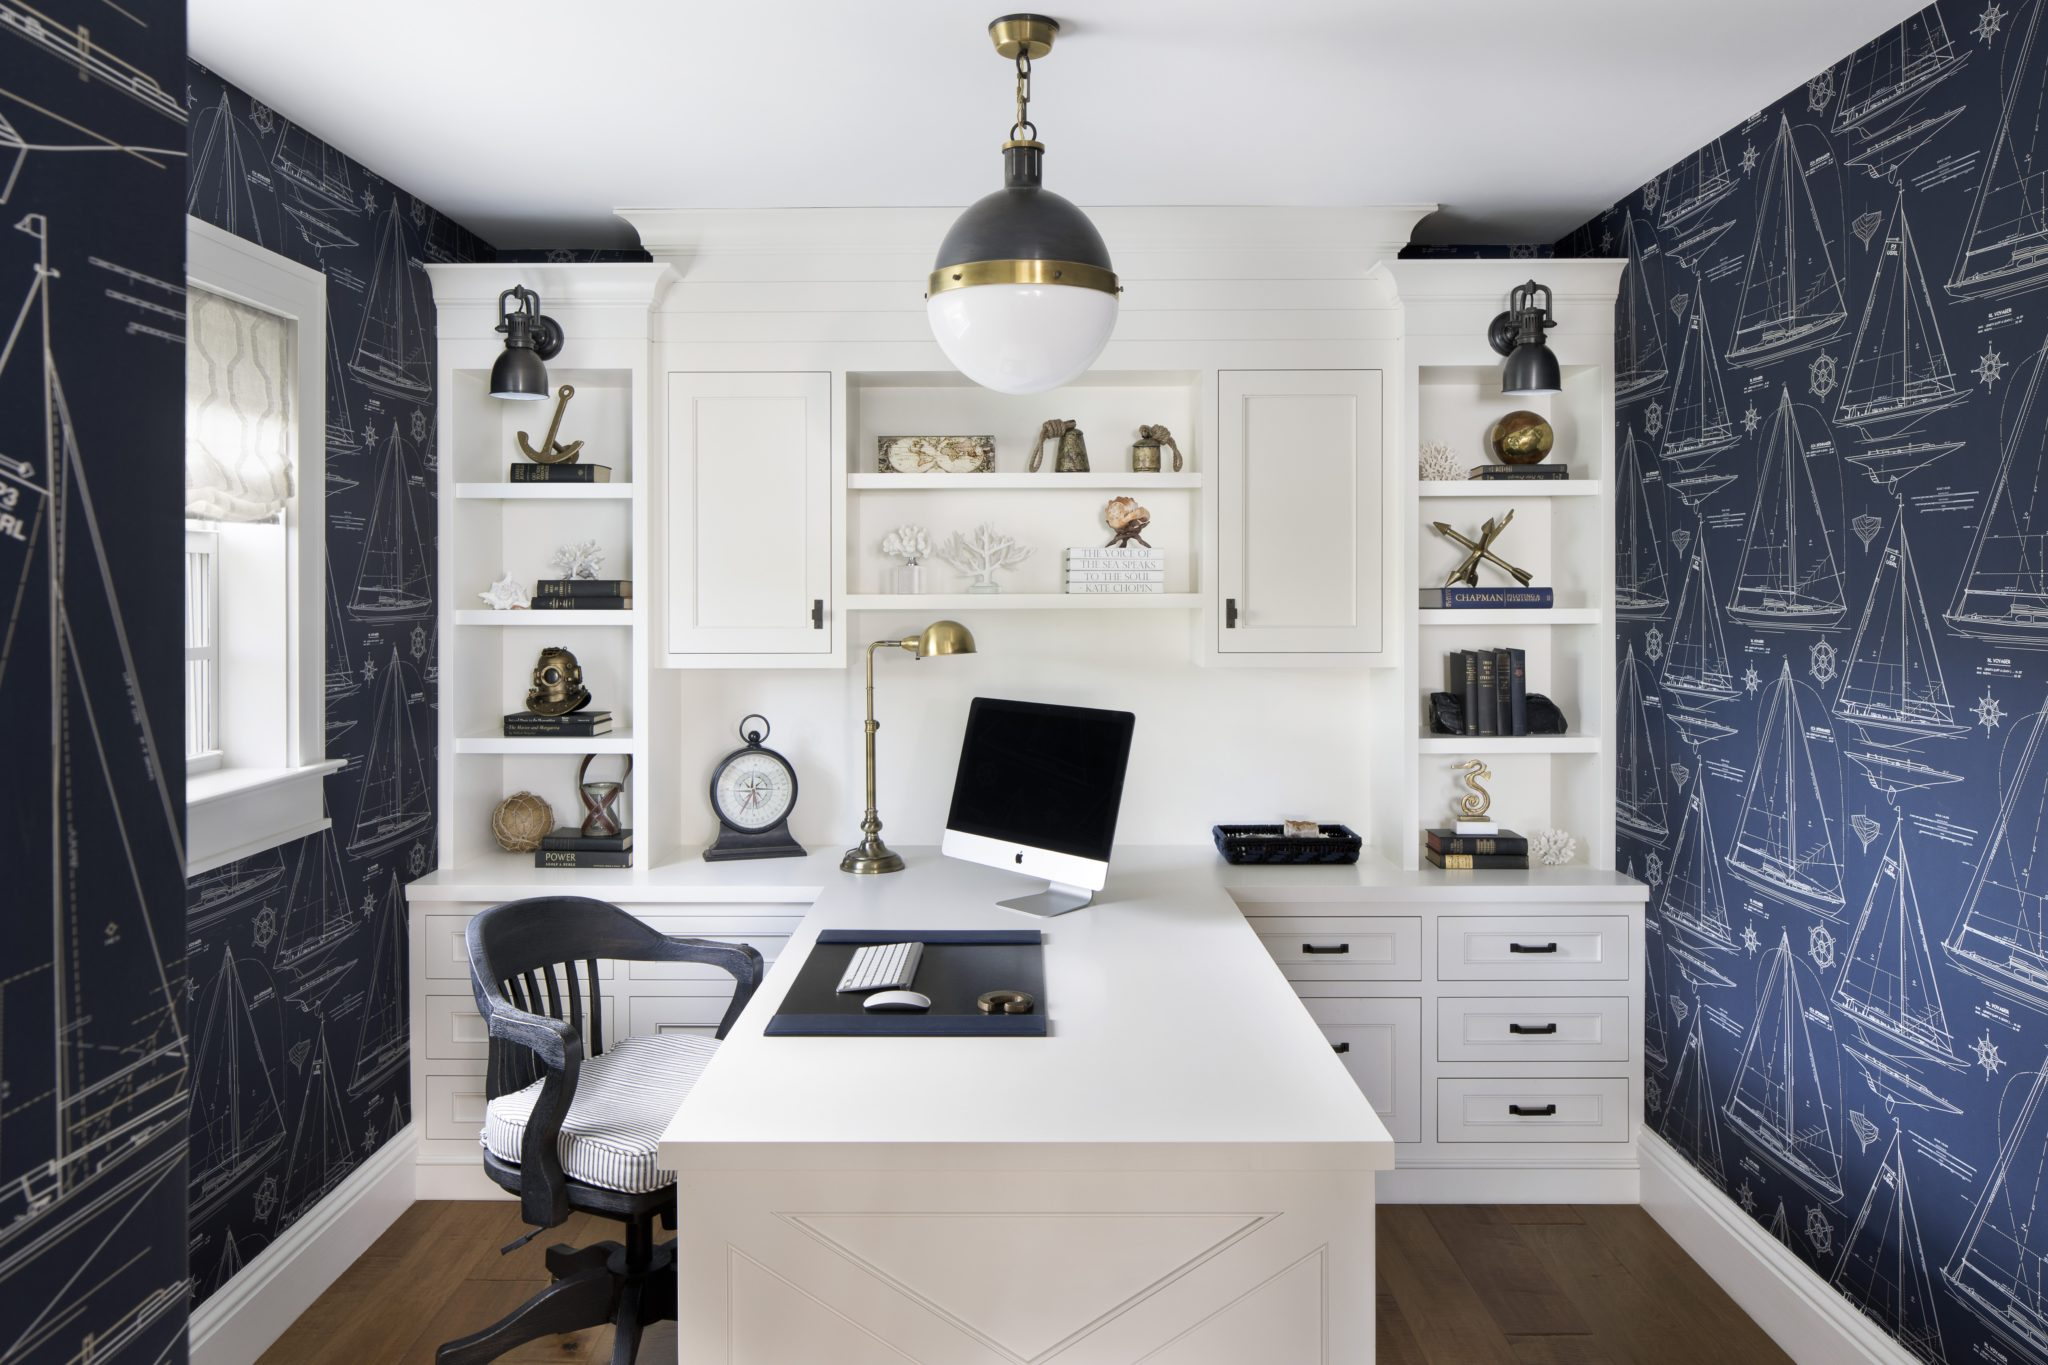 Boathouse-Inspired Home Office with Sailboat Wallpaper by Lisa Michael Interiors